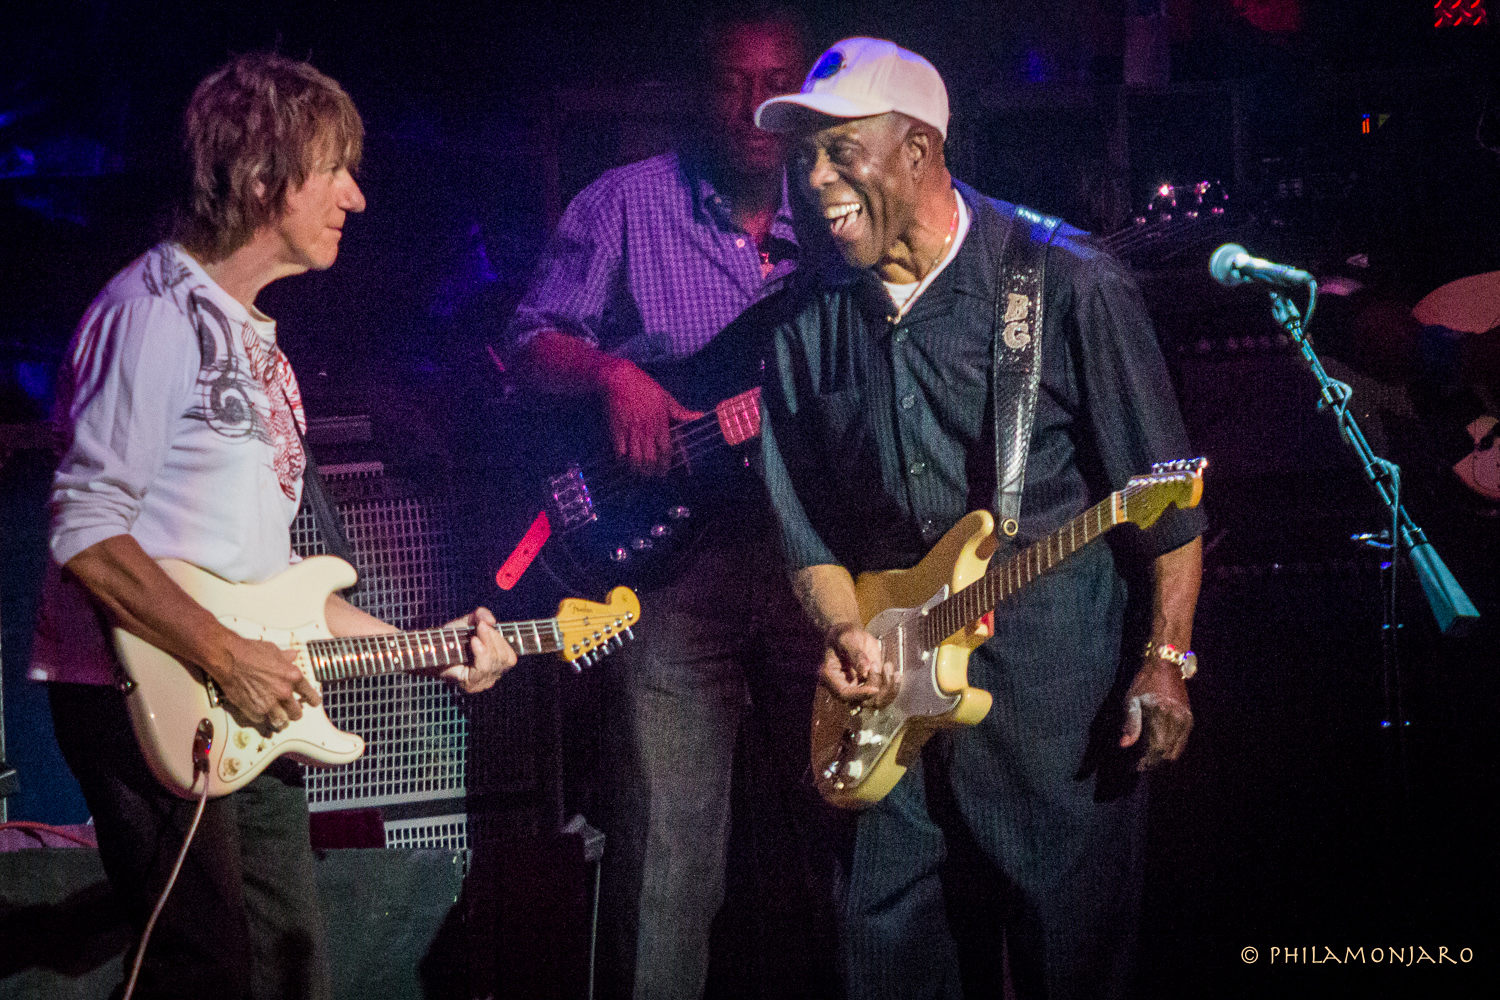 Photos / Recap | Jeff Beck & Buddy Guy @ Ravinia 7/31/16